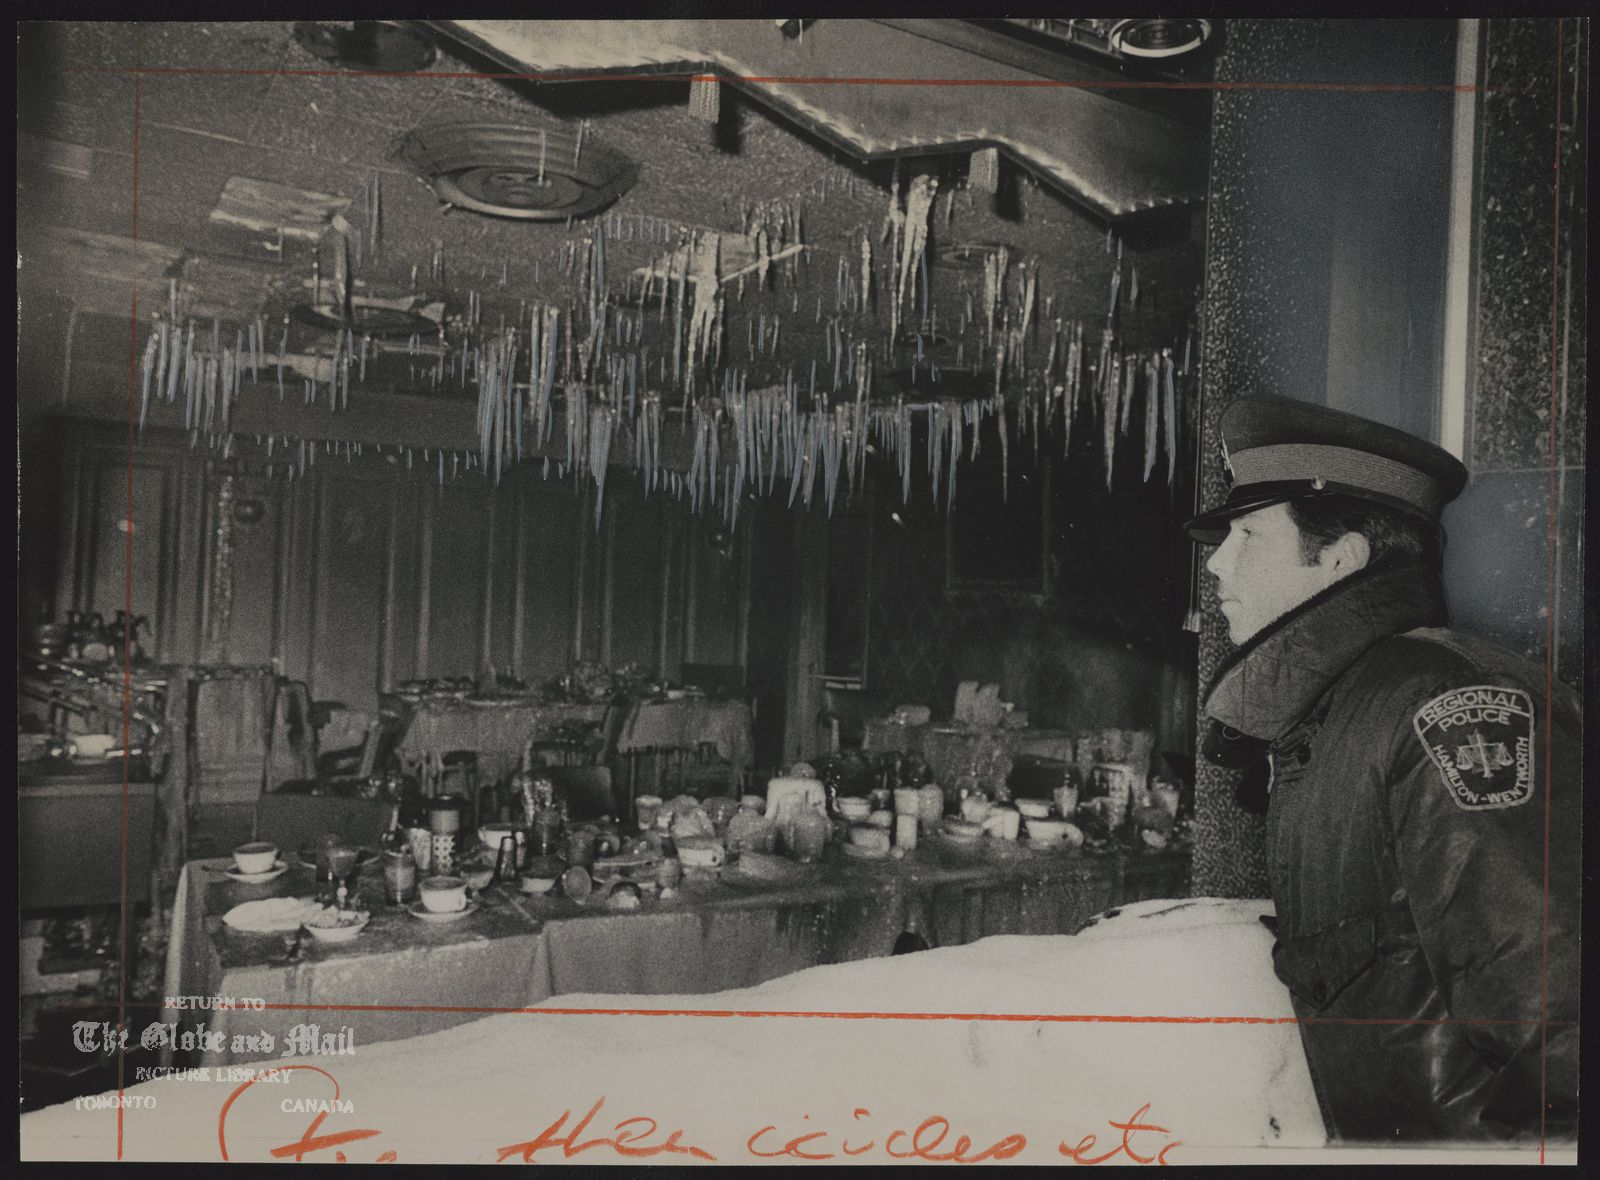 WENTWORTH ARMS HOTEL (Hamilton) Police Constable Brian Mullan, on duty at Hamilton's Wentworth Arms Hotel, is outside the icicle-festooned dining room of the hotel, which was gutted by a fire that killed six people on Christmas Day. The unsafe shell of the building is to be demolished.